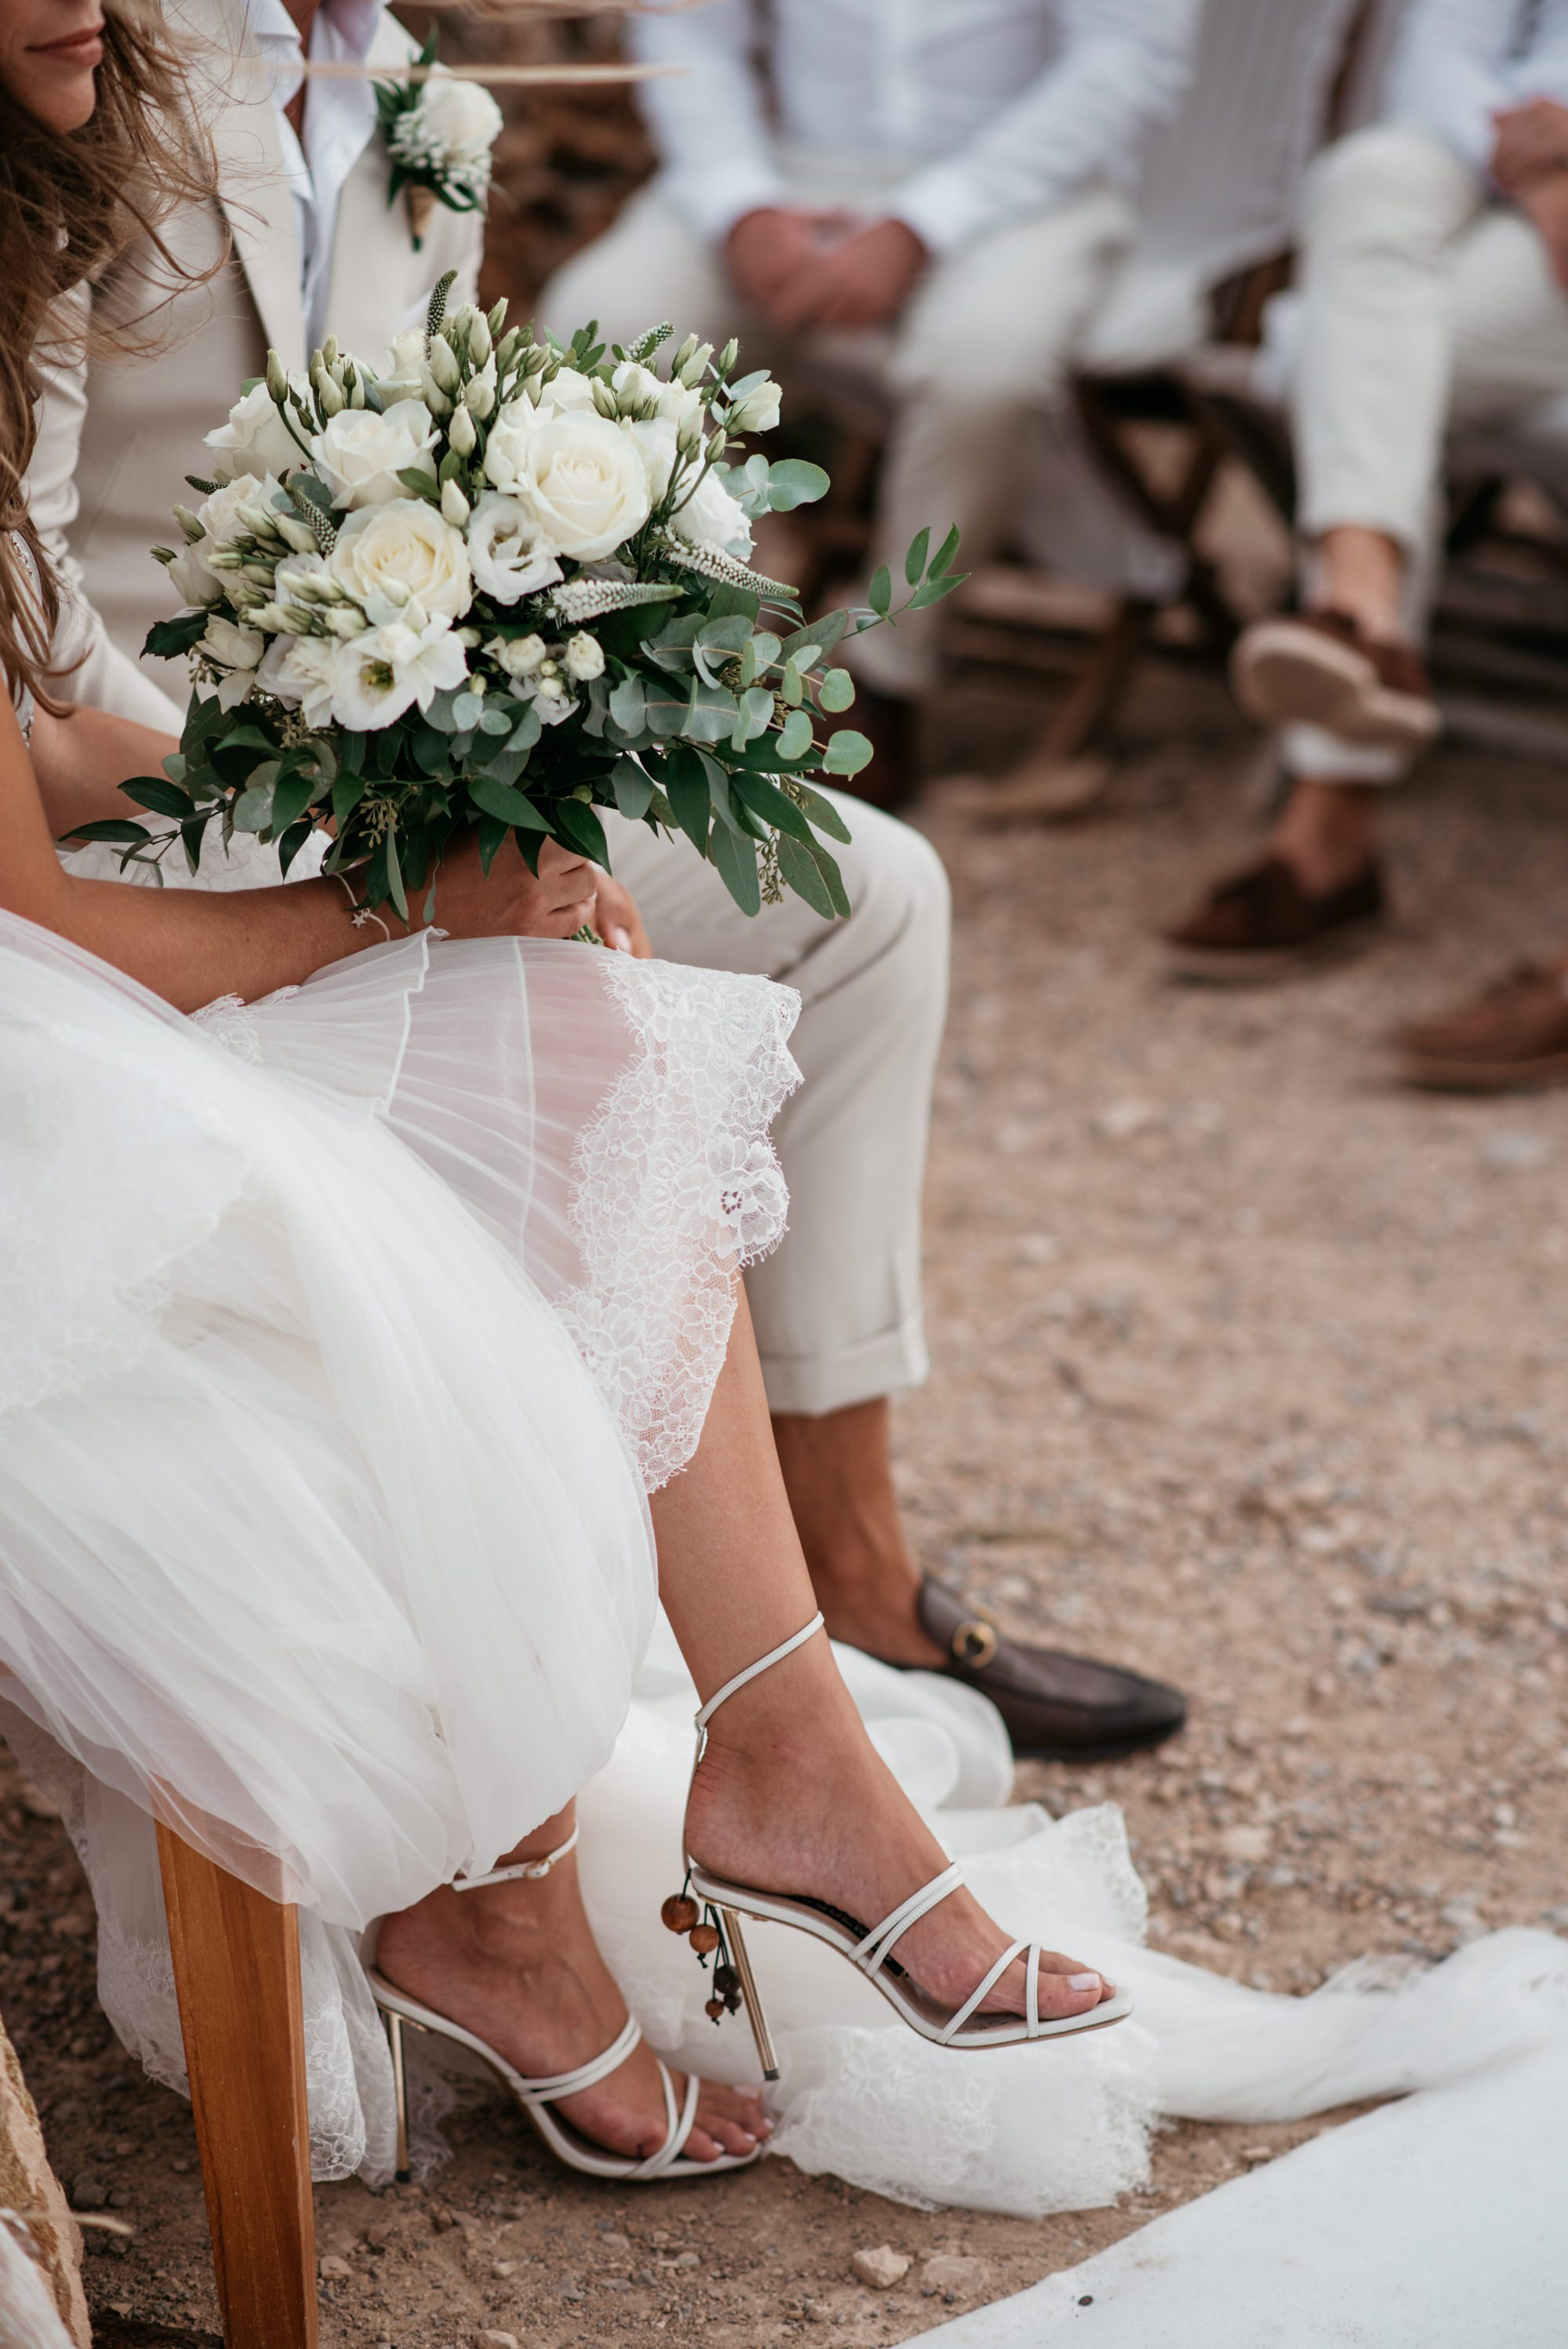 natural wedding photo destination la escollera ibiza 0060 1